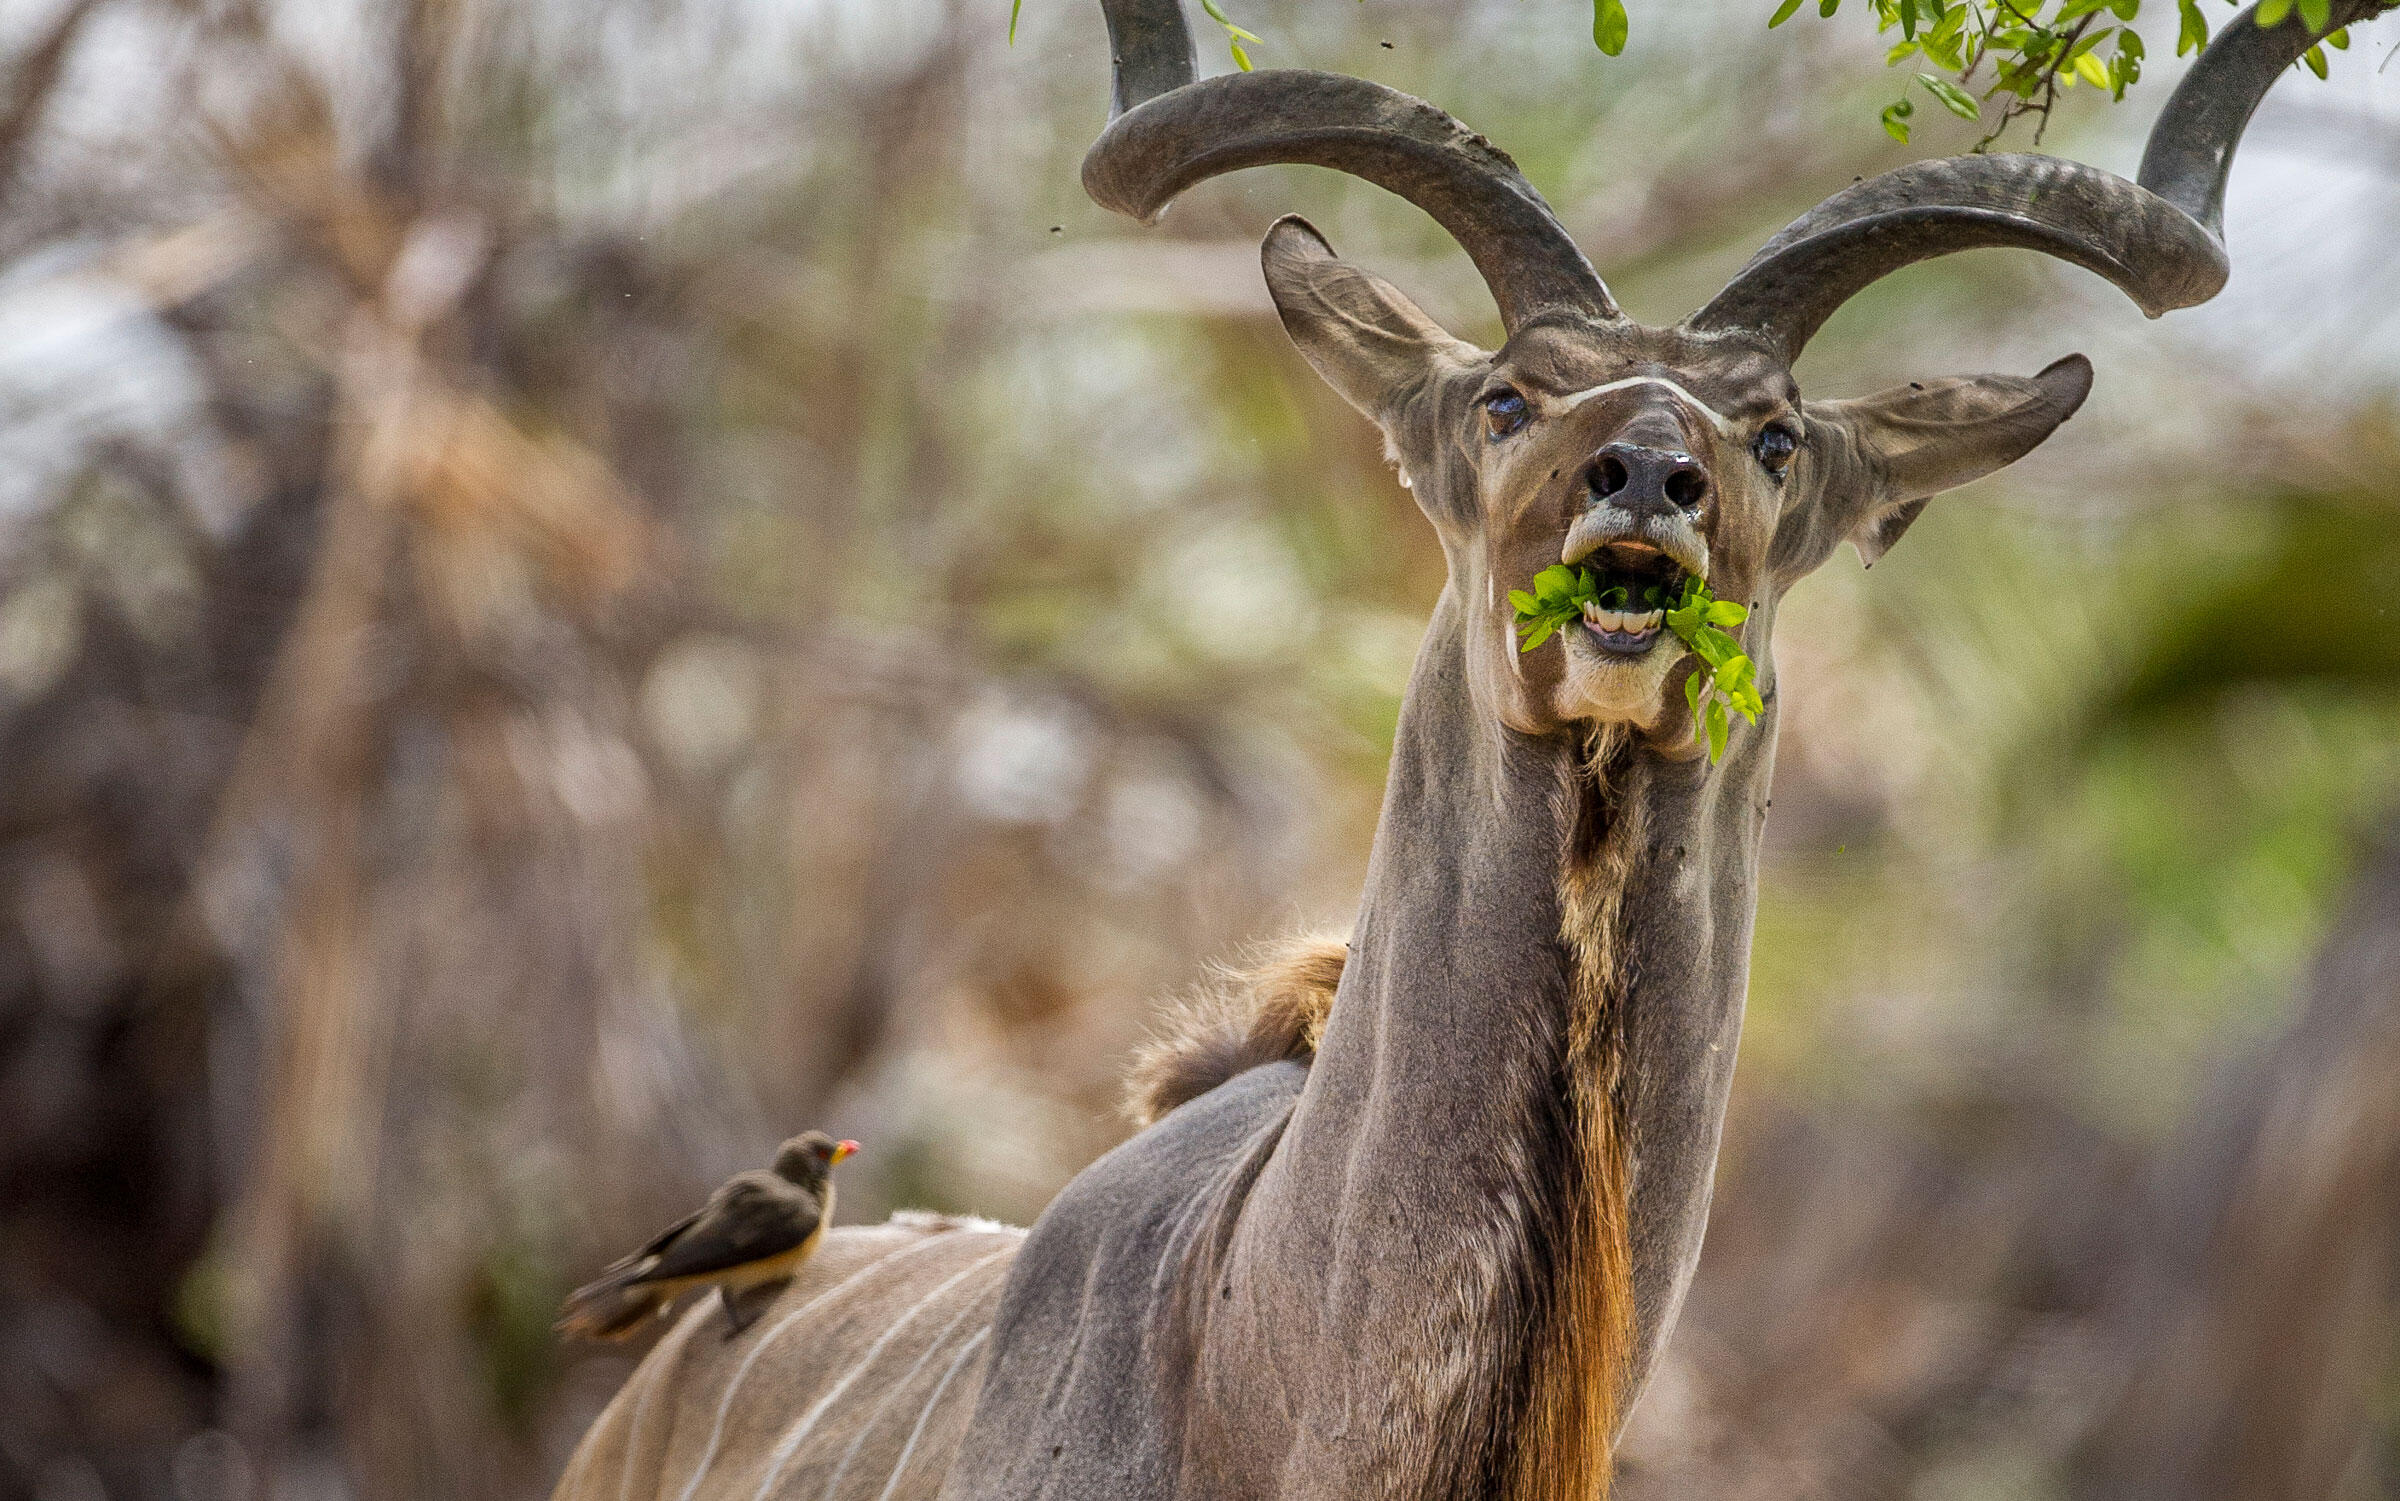 The greater kudu is a large and magnificent antelope. The males have spiral horns which can reach nearly 2 meters in length. Robert J. Ross